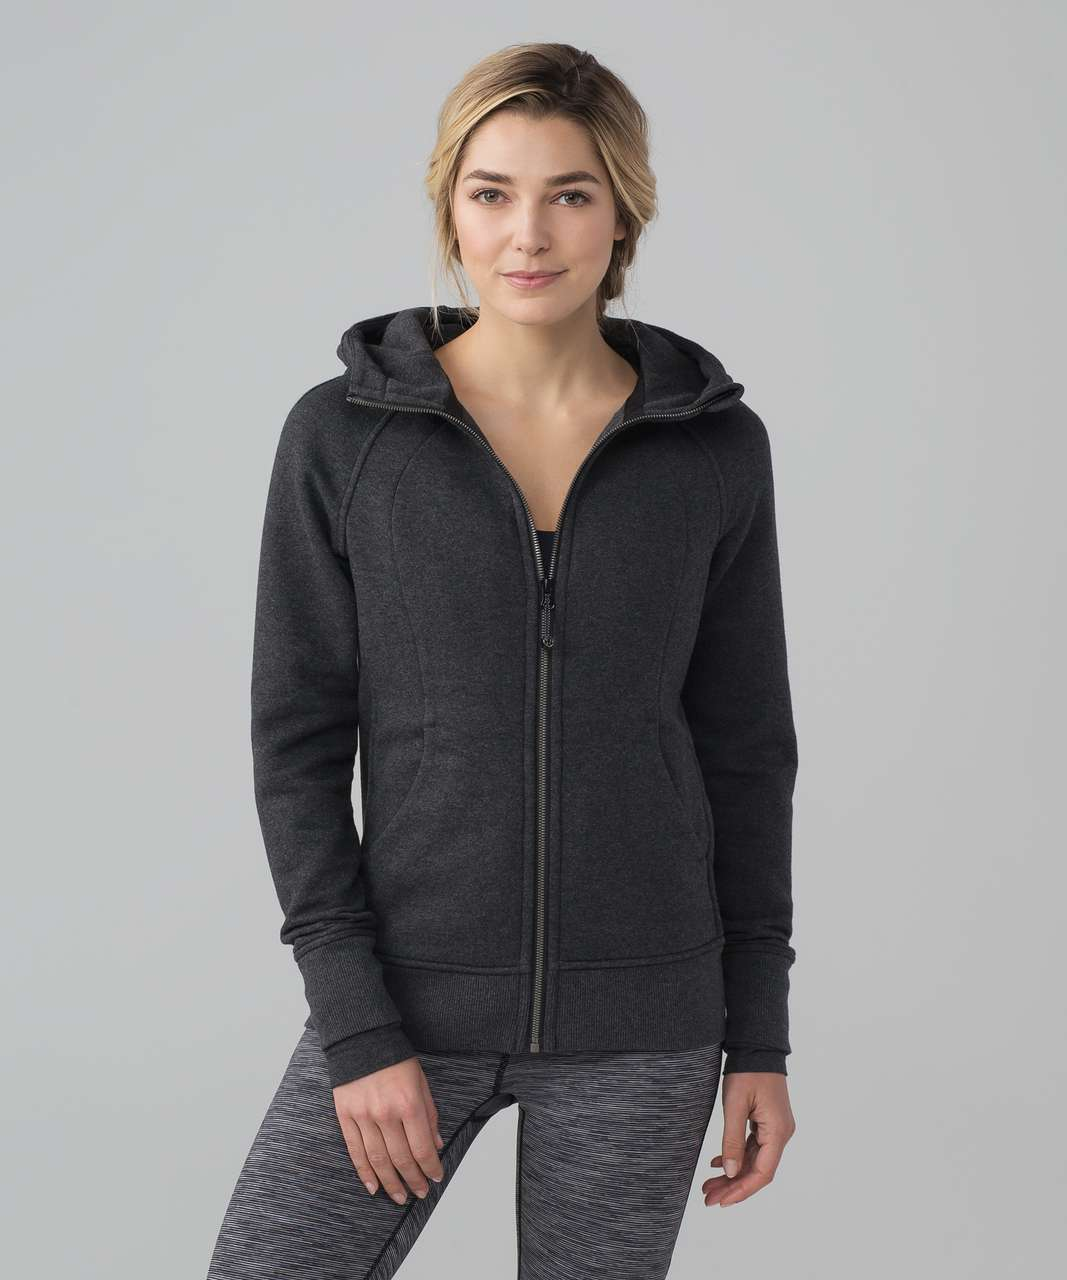 Lululemon Scuba Hoodie III (Storage) - Heathered Black